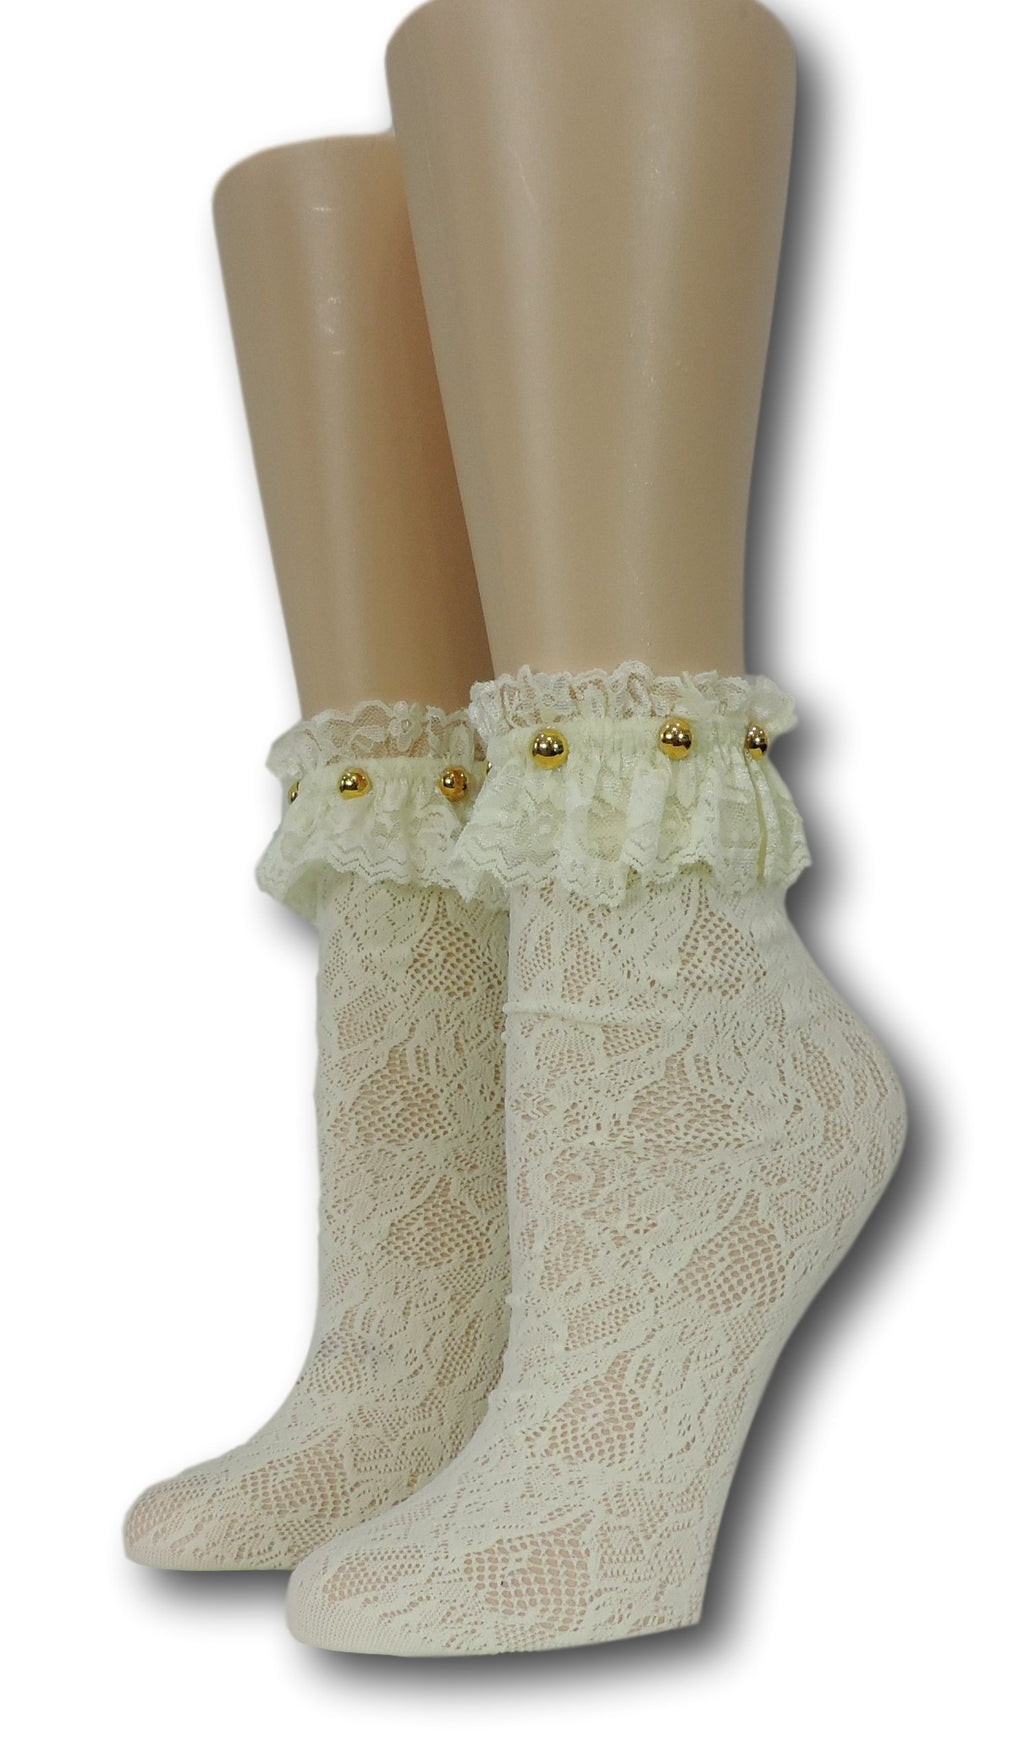 Yellow Floral Frilly Socks with beads